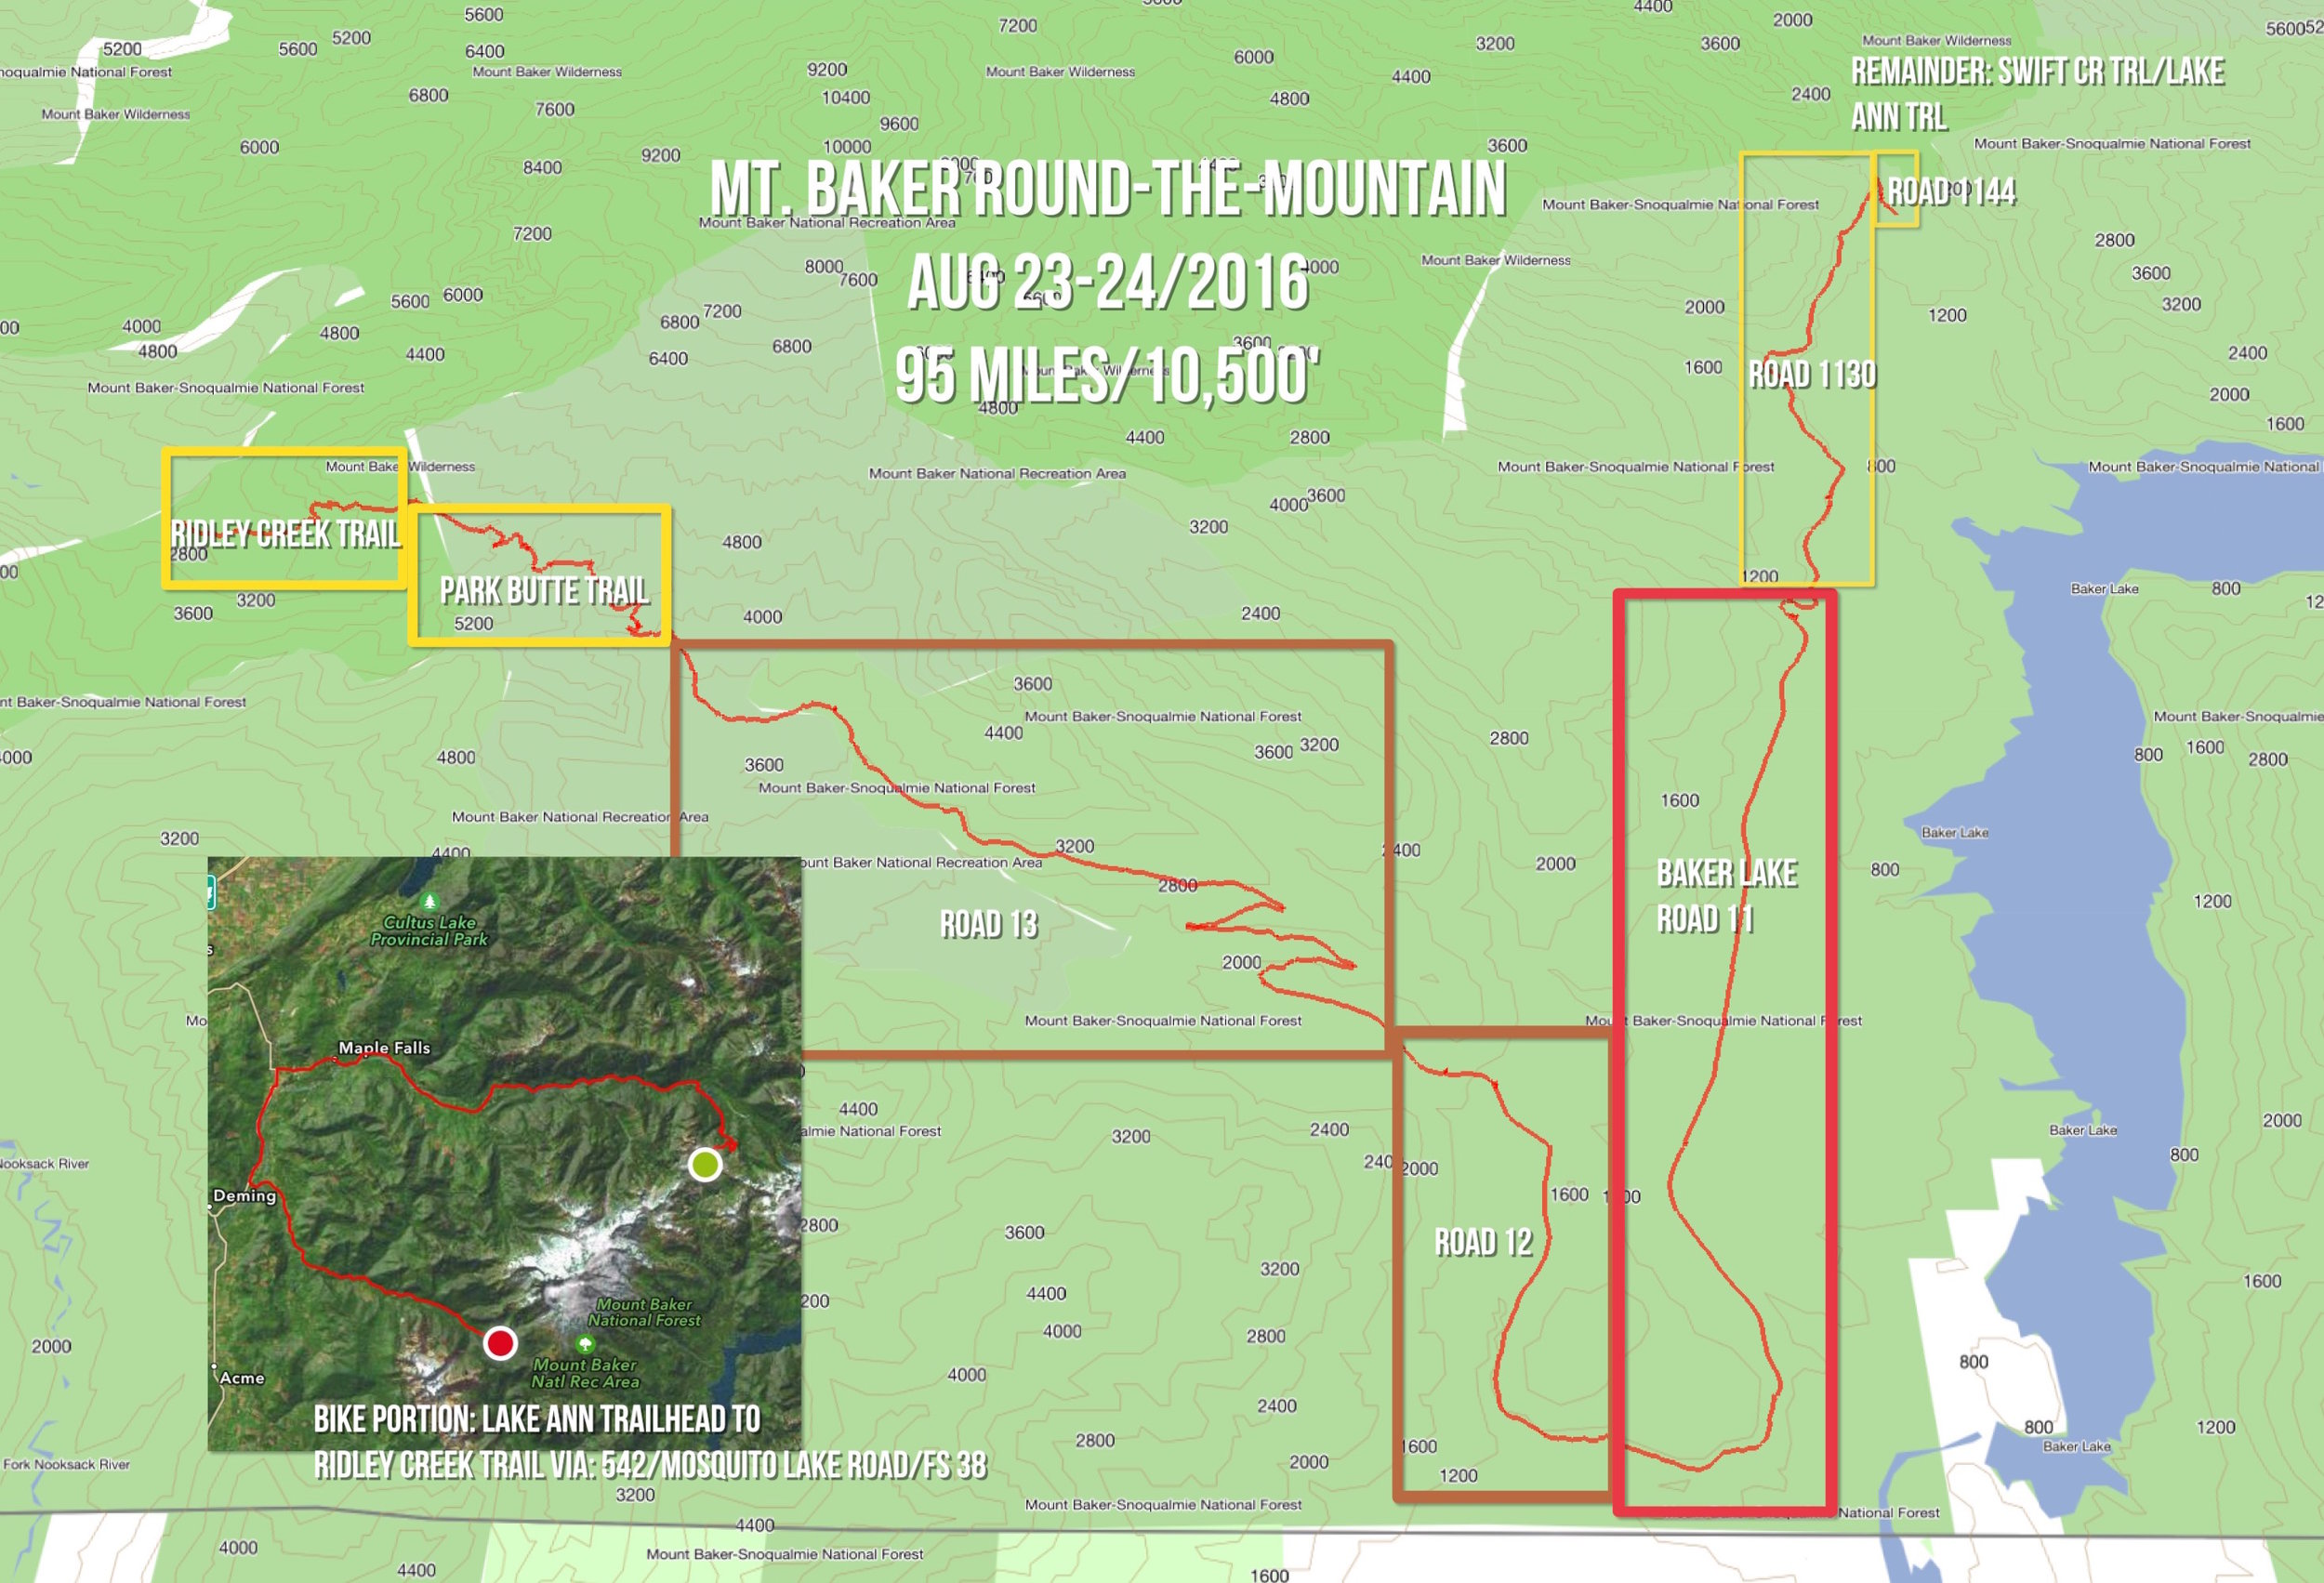 Mt. Baker Round-The-Mountain route: 58 miles biking, 37 miles walking